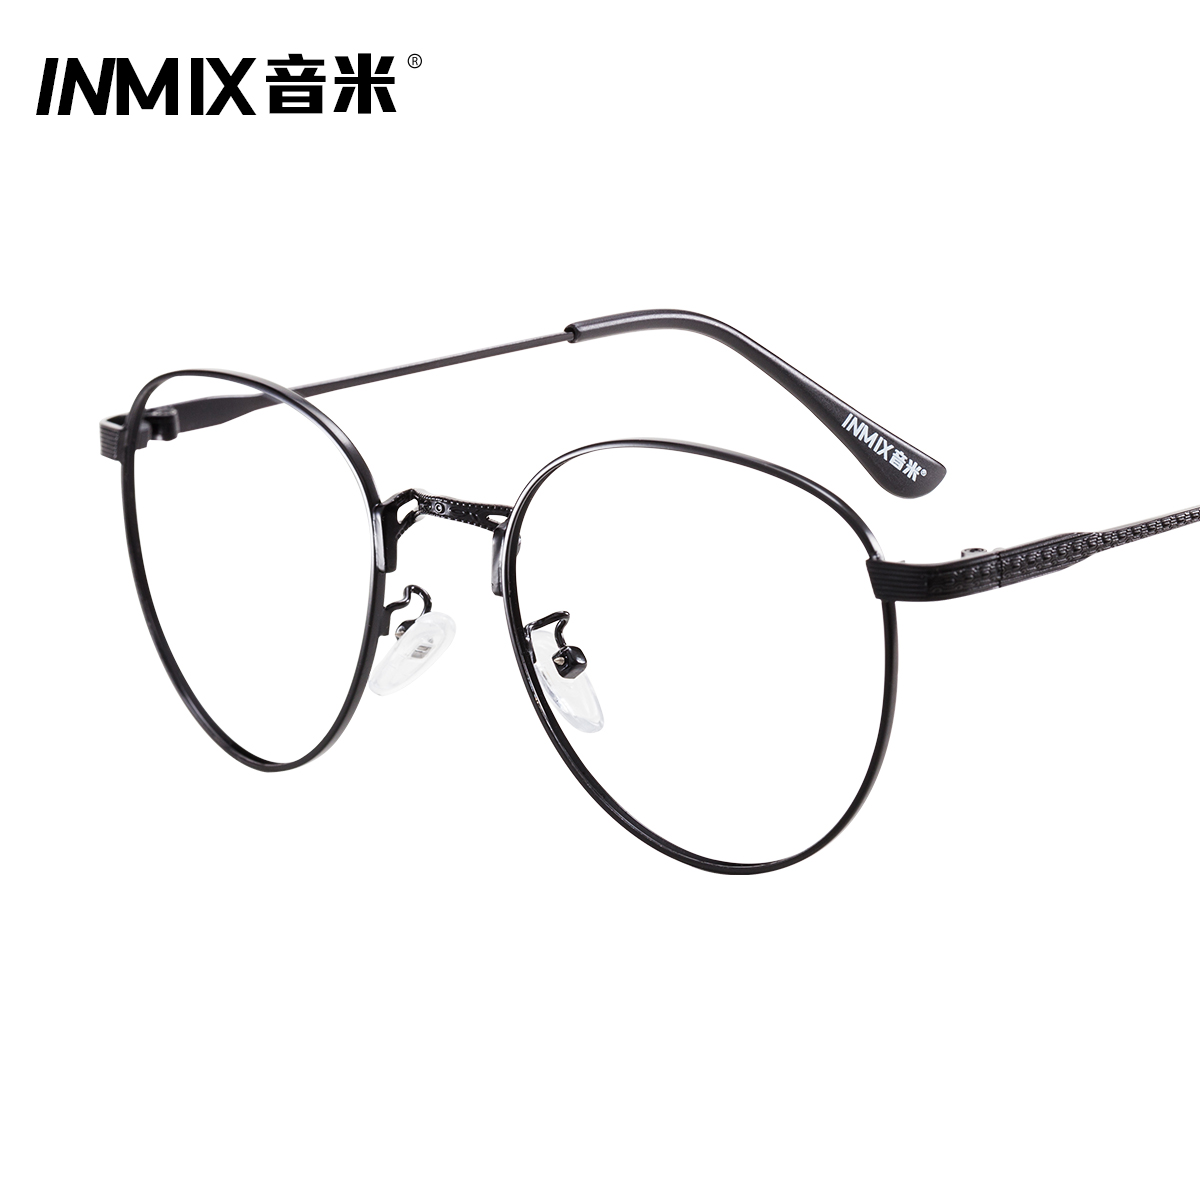 Thin Framed Fashion Glasses : metal glasses with thin frames Wrap Yourself Thin